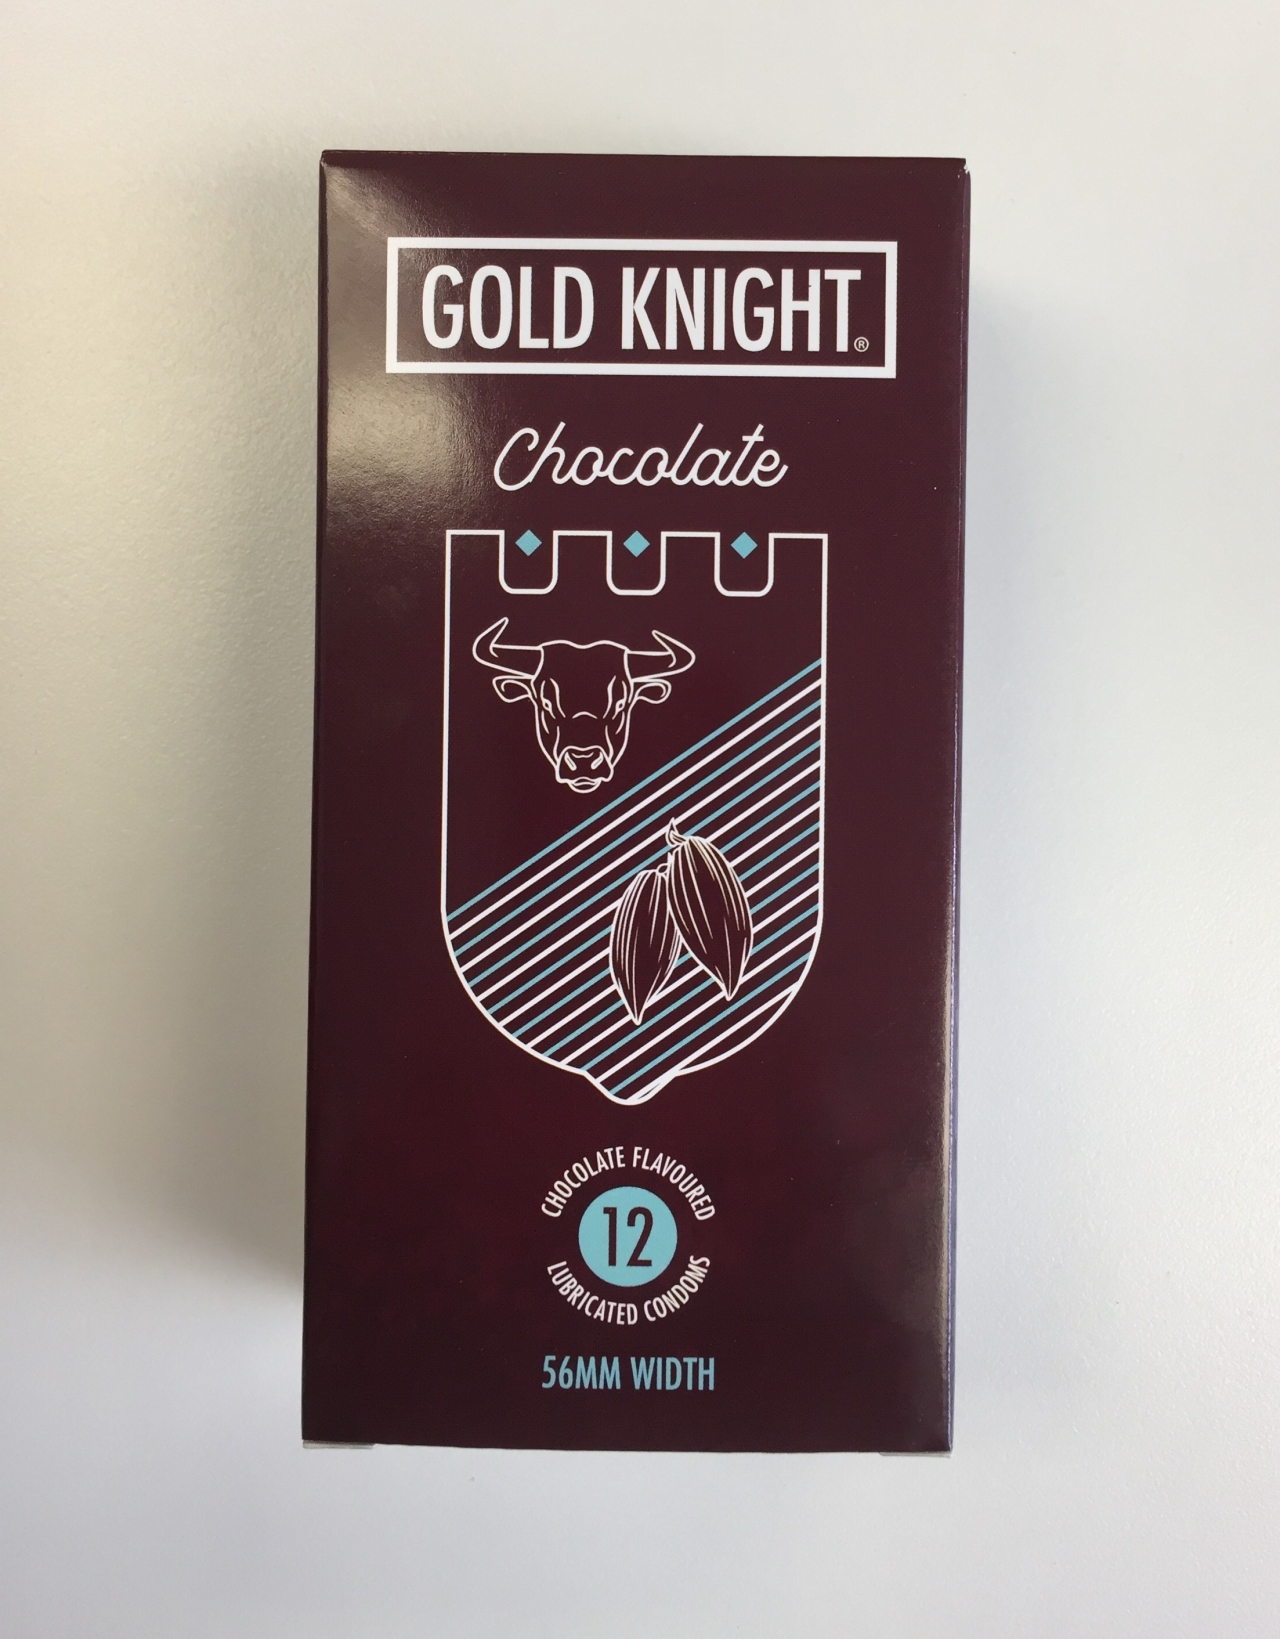 Gold Knight Condoms - Chocolate Flavoured - Box of 12